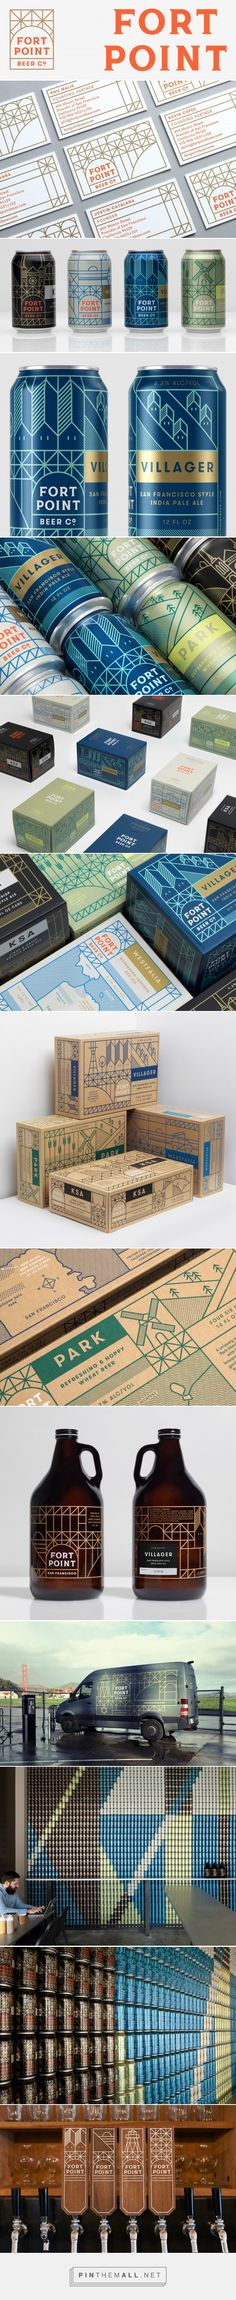 Brand New: New Logo, Identity, and Packaging for Fort Point Beer by Manual - created via https://pinthemall.net